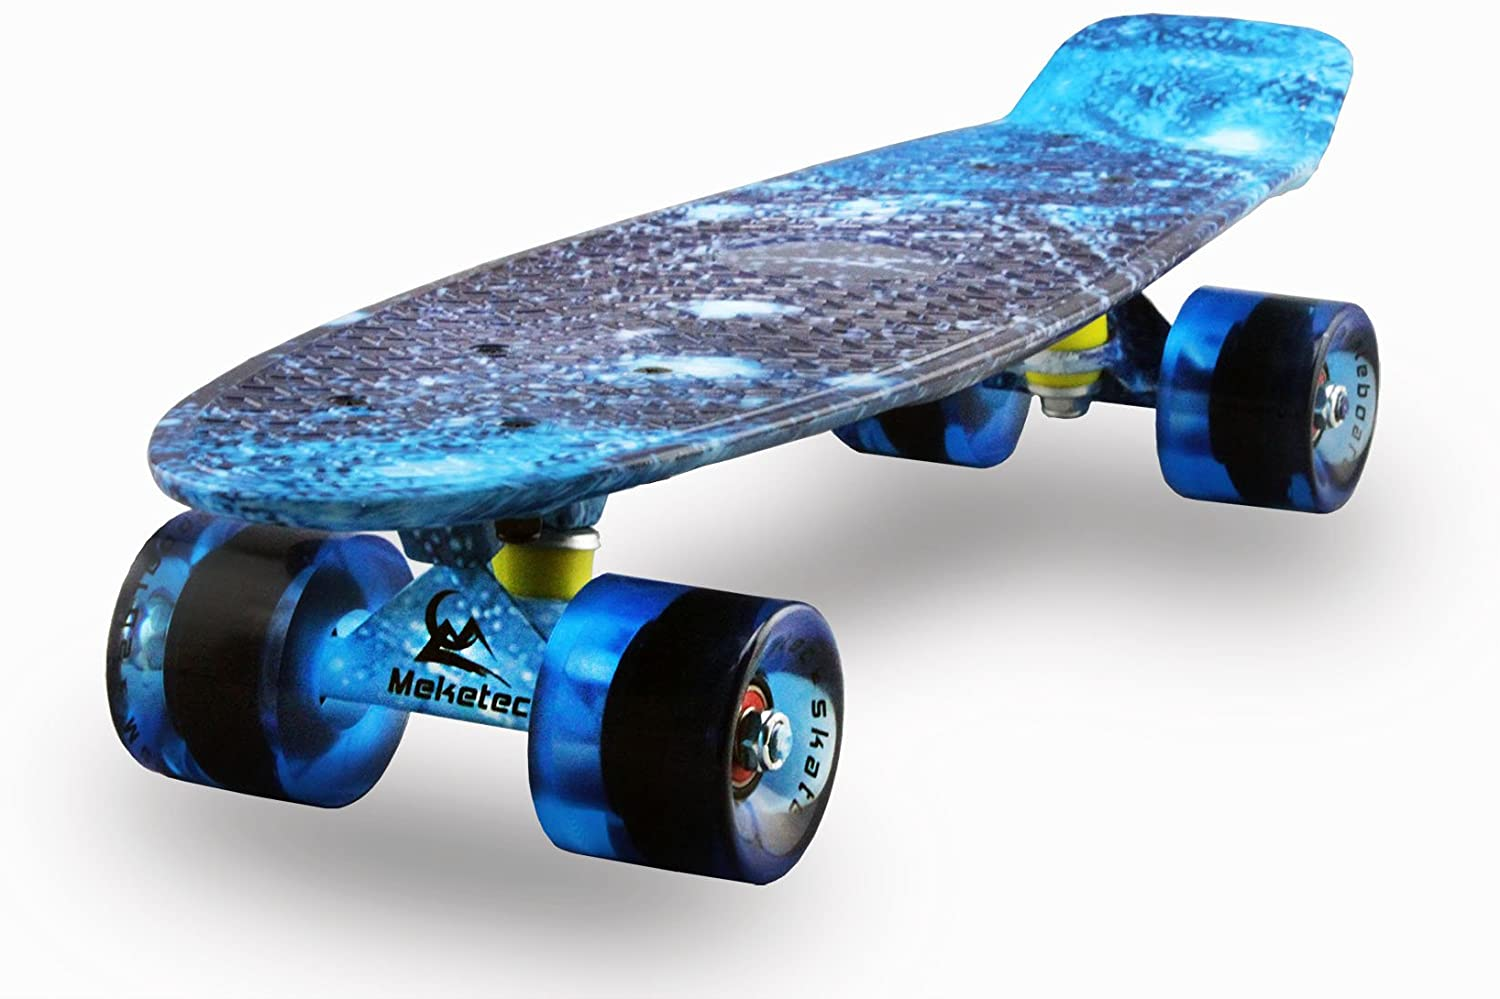 gifts-for-9-year-old-boys-skateboard